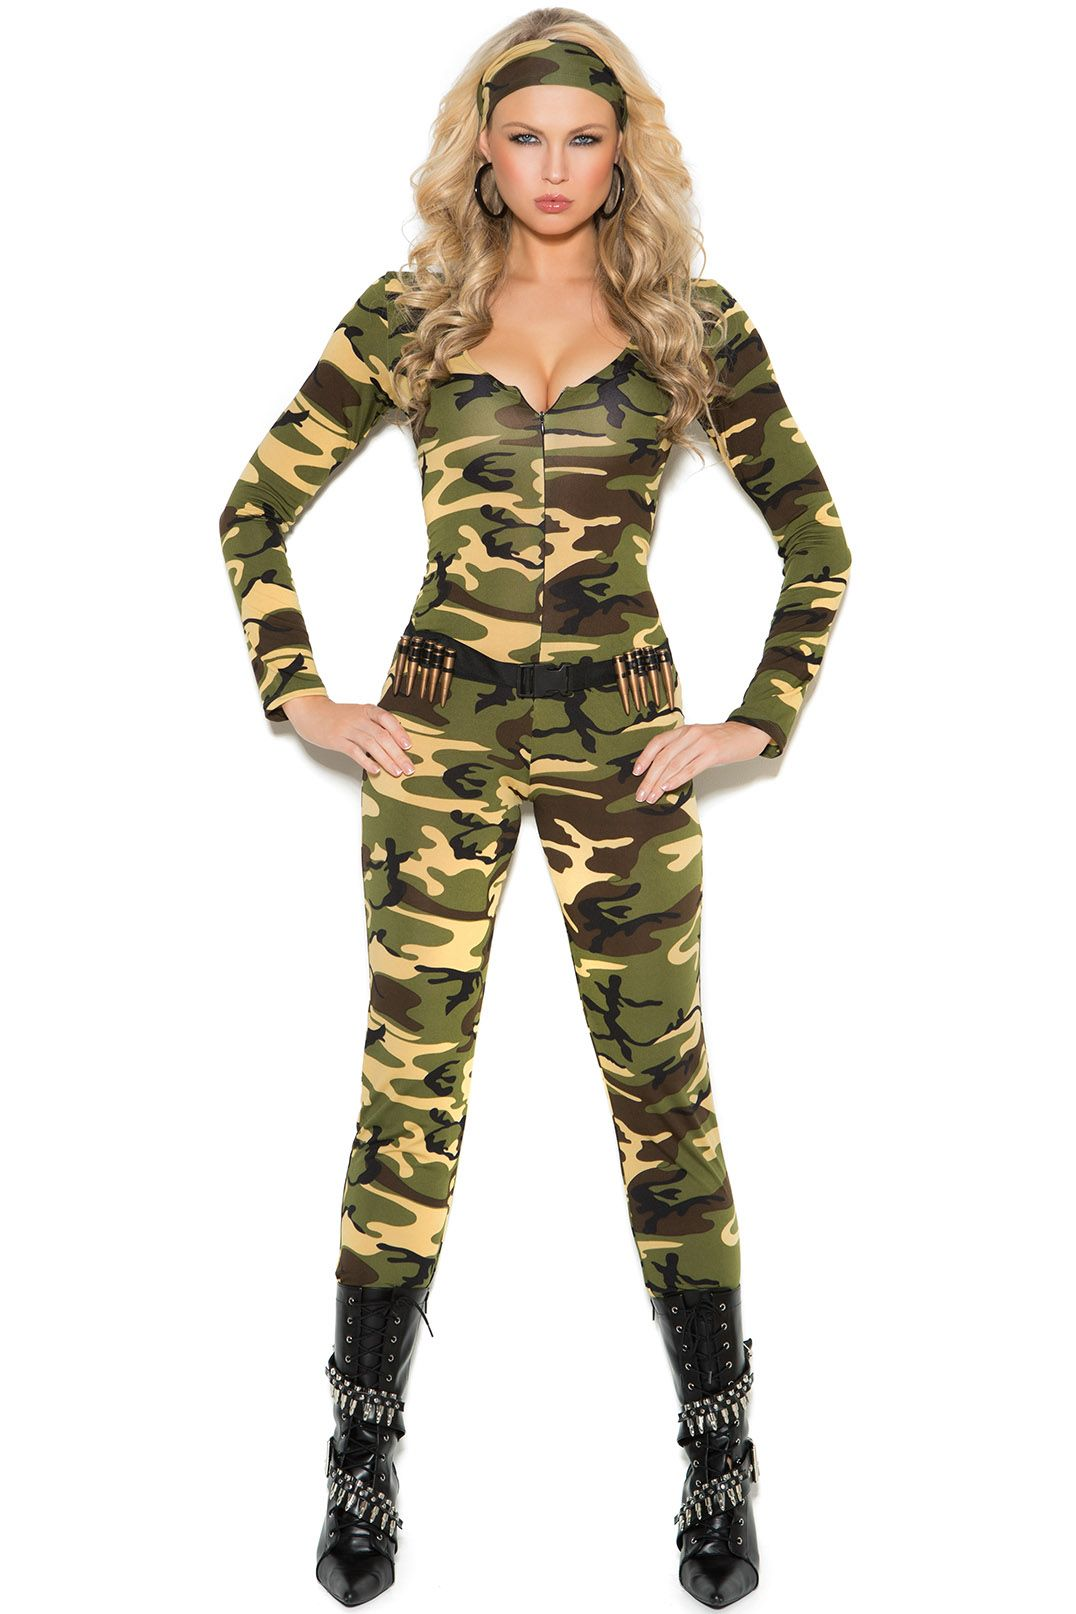 Shop for military costumes like this Combat Warrior Costume at ...